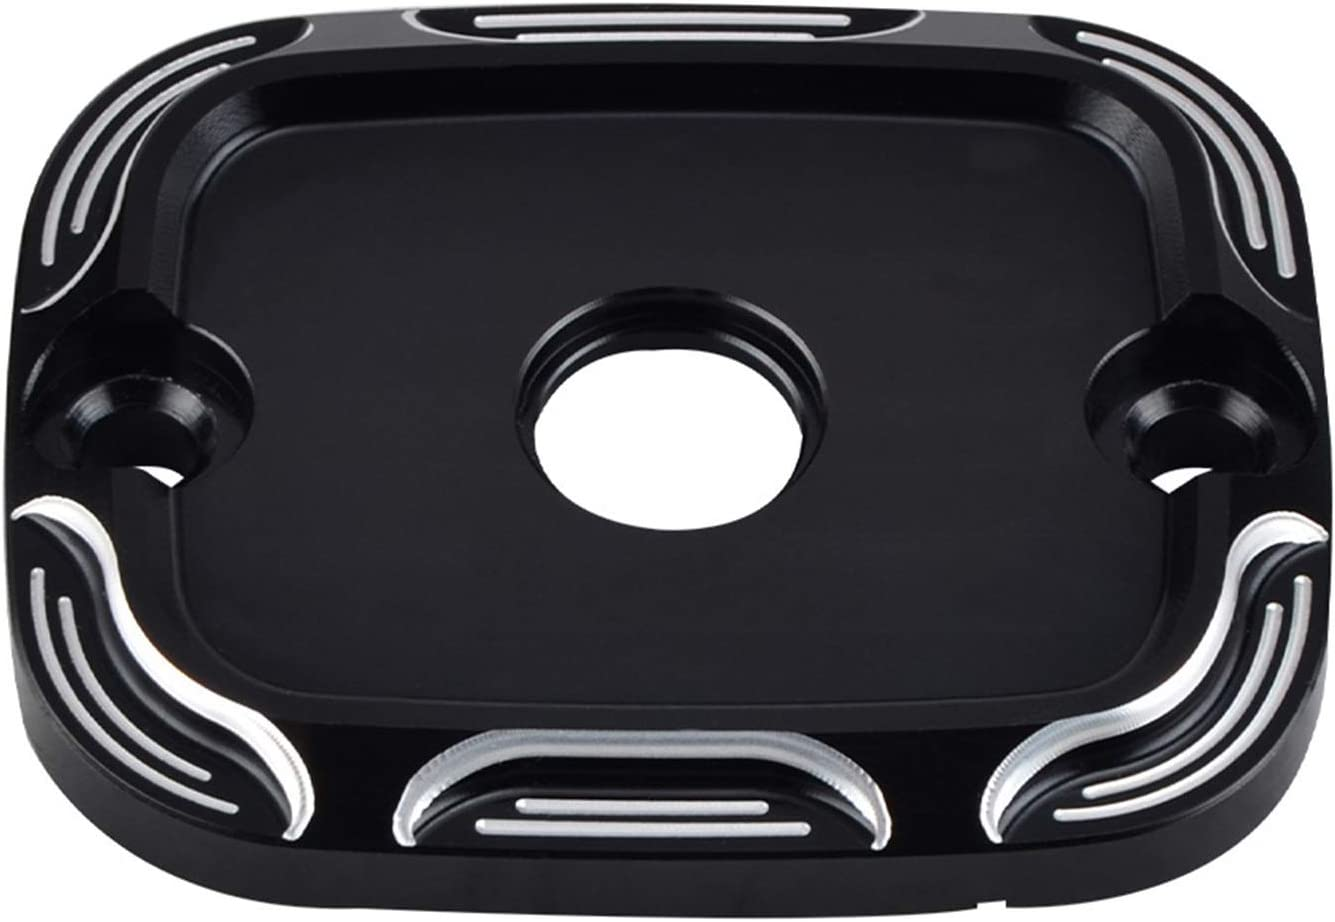 GSZU Front Brake San Antonio Mall New product!! Fluid Reservoir Cover - Harley Cap Fit for